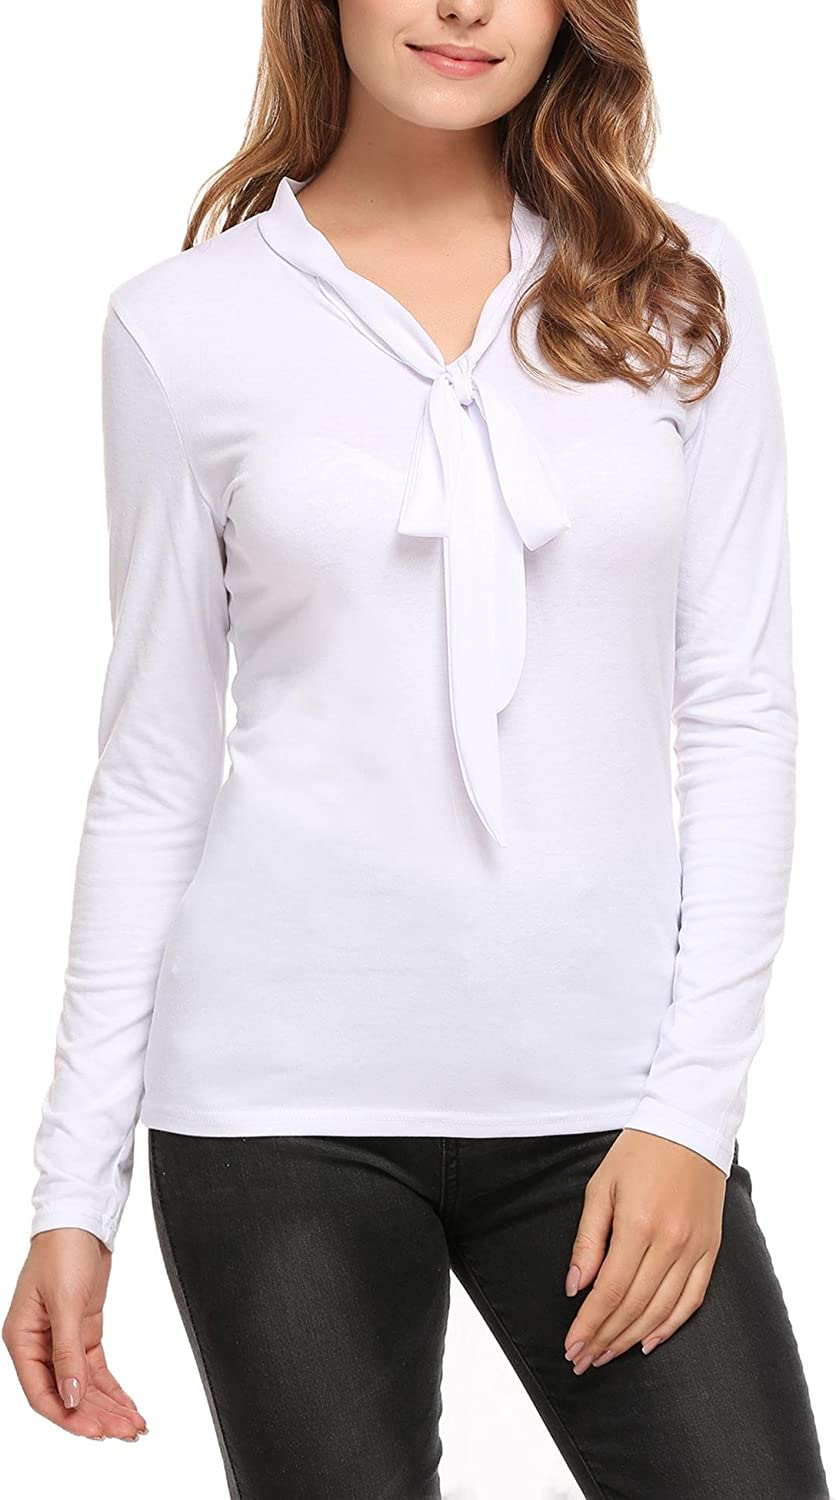 ELESOL Women Tie Bow Neck Long Sleeve Slim Fit Casual Work Business Top Blouse